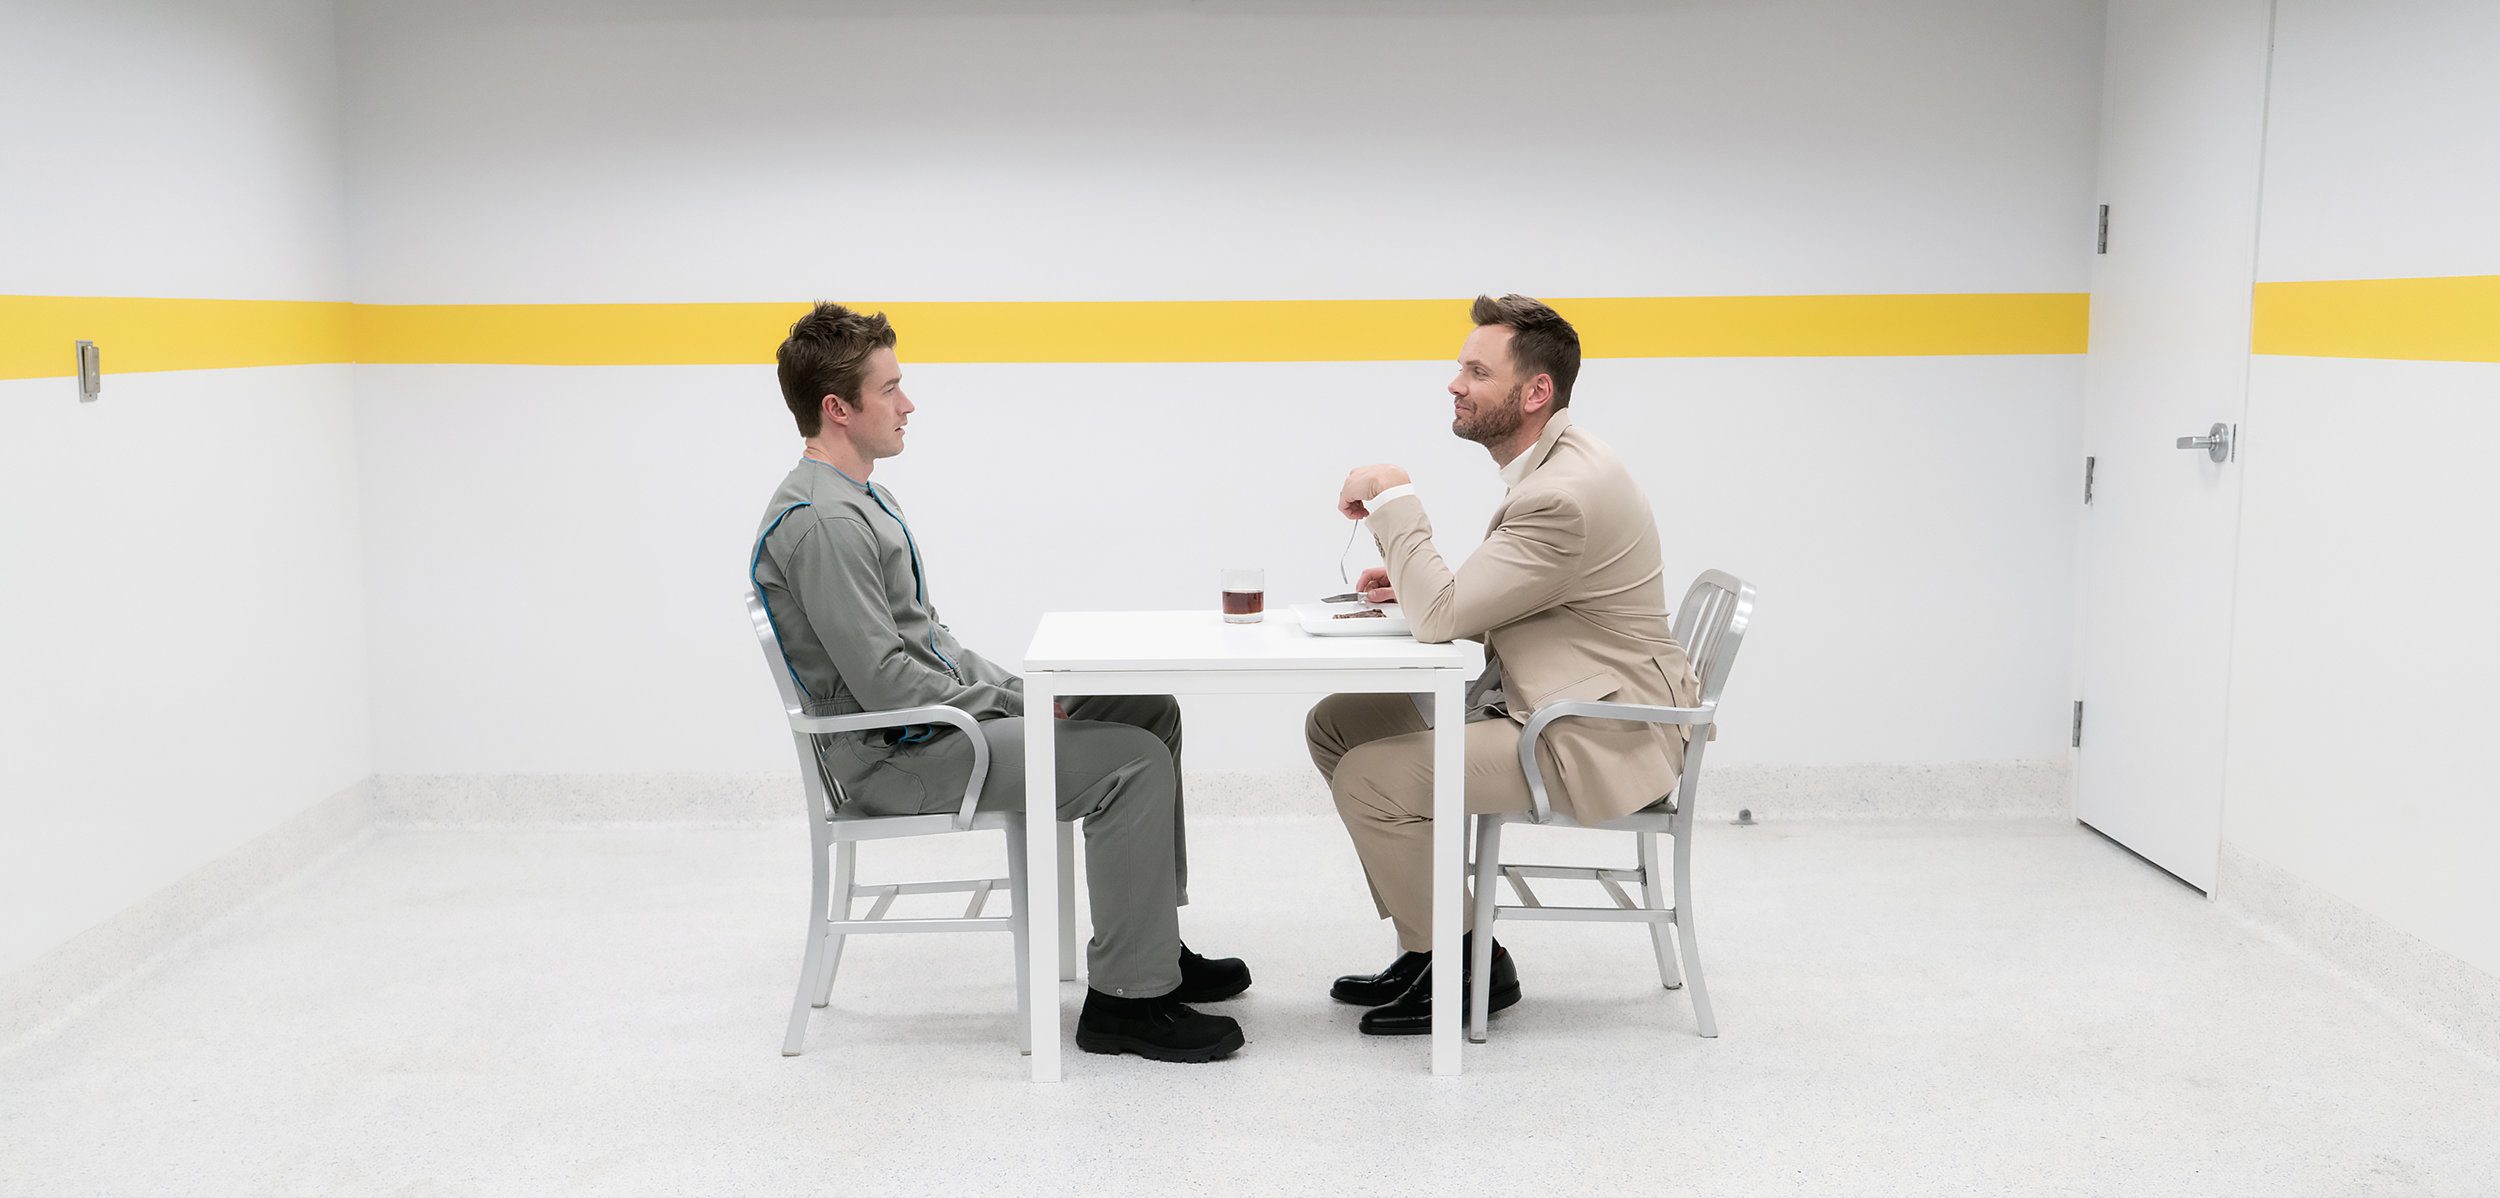 Joel McHale and Robert Buckley in a scene from Hulu's Dimension 404.